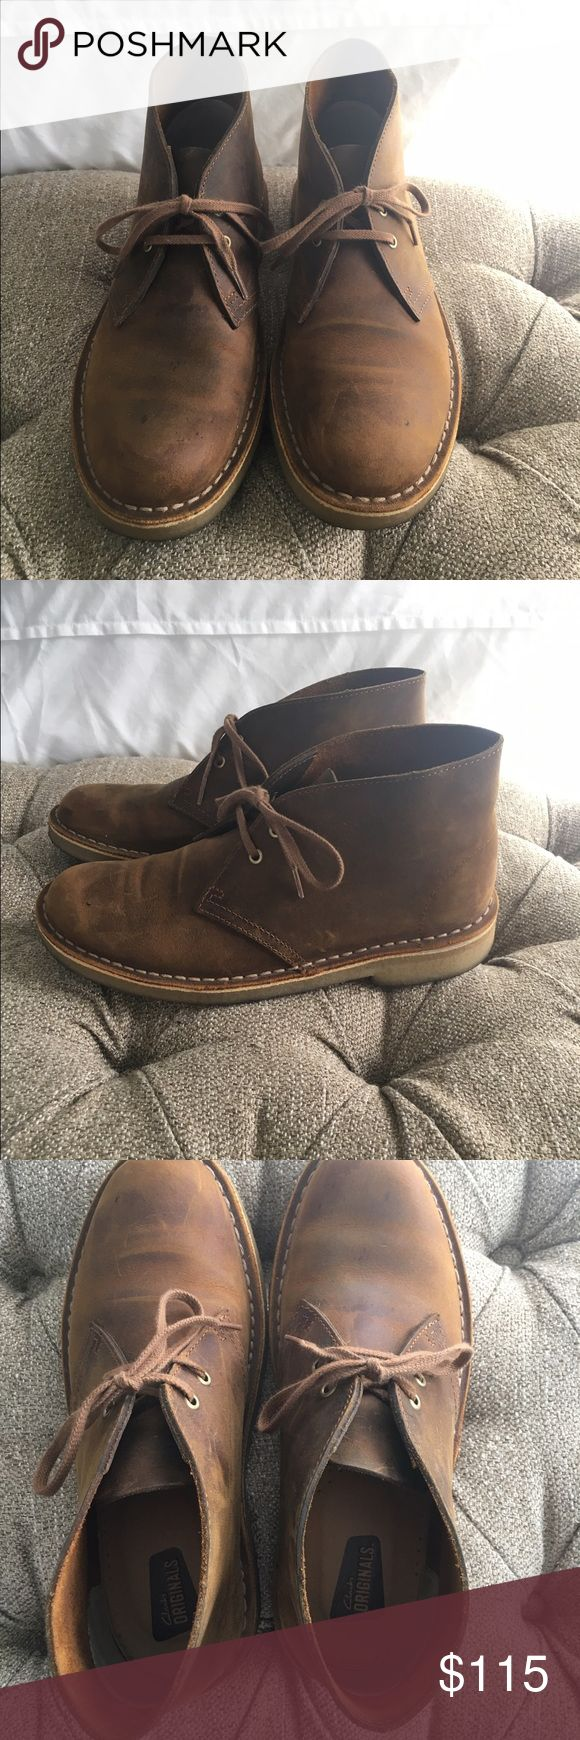 Clark's Women's Desert Boots Clark's Women's Desert Boots in brown leather, only worn about five times. They are super comfortable! Clarks Shoes Ankle Boots & Booties